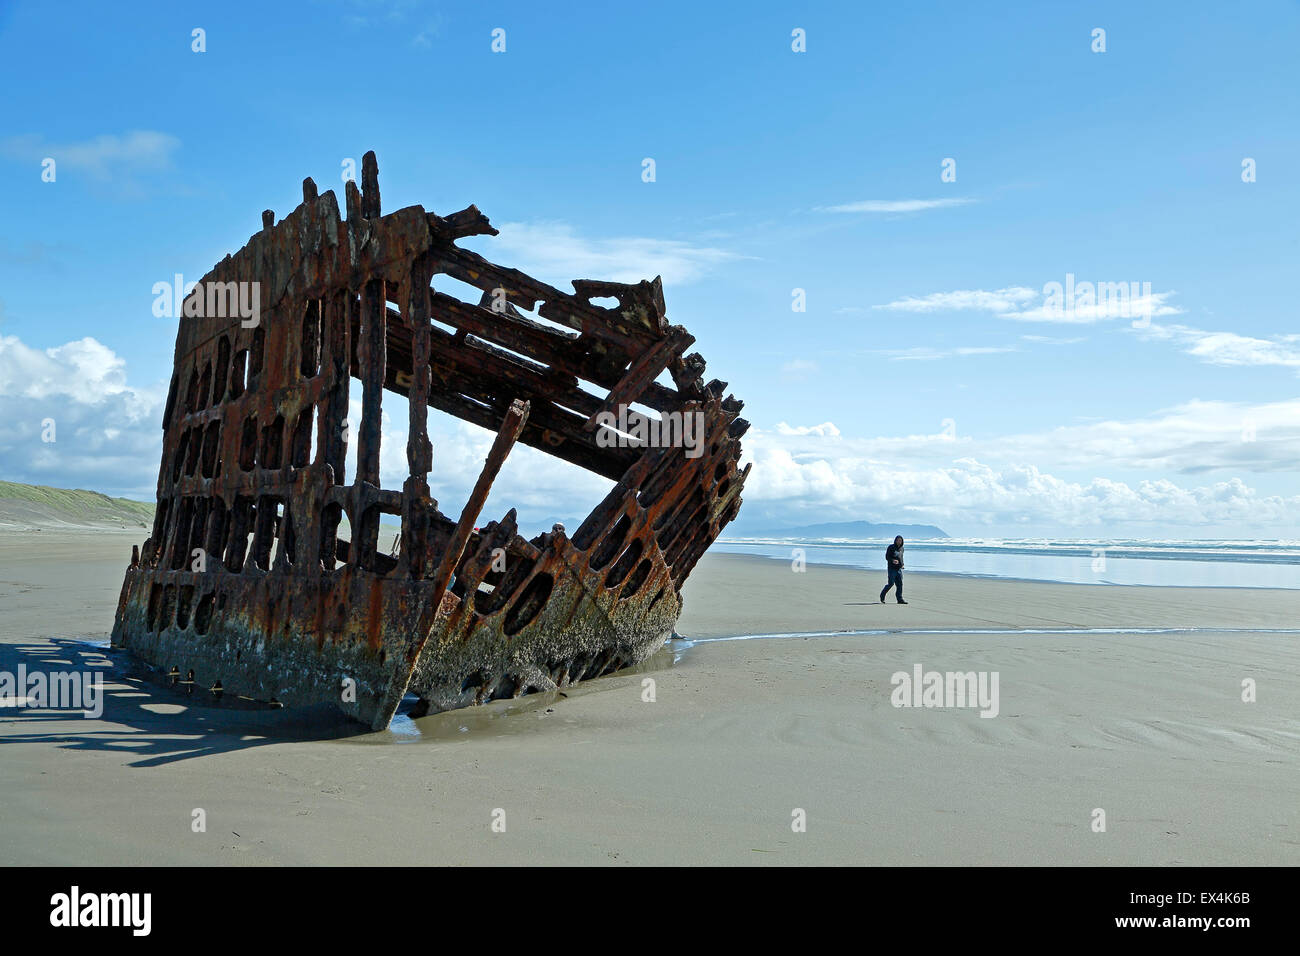 Tourist at shipwreck of the Peter Iredale ship, Fort Stevens State Park, near Astoria, Oregon USA - Stock Image